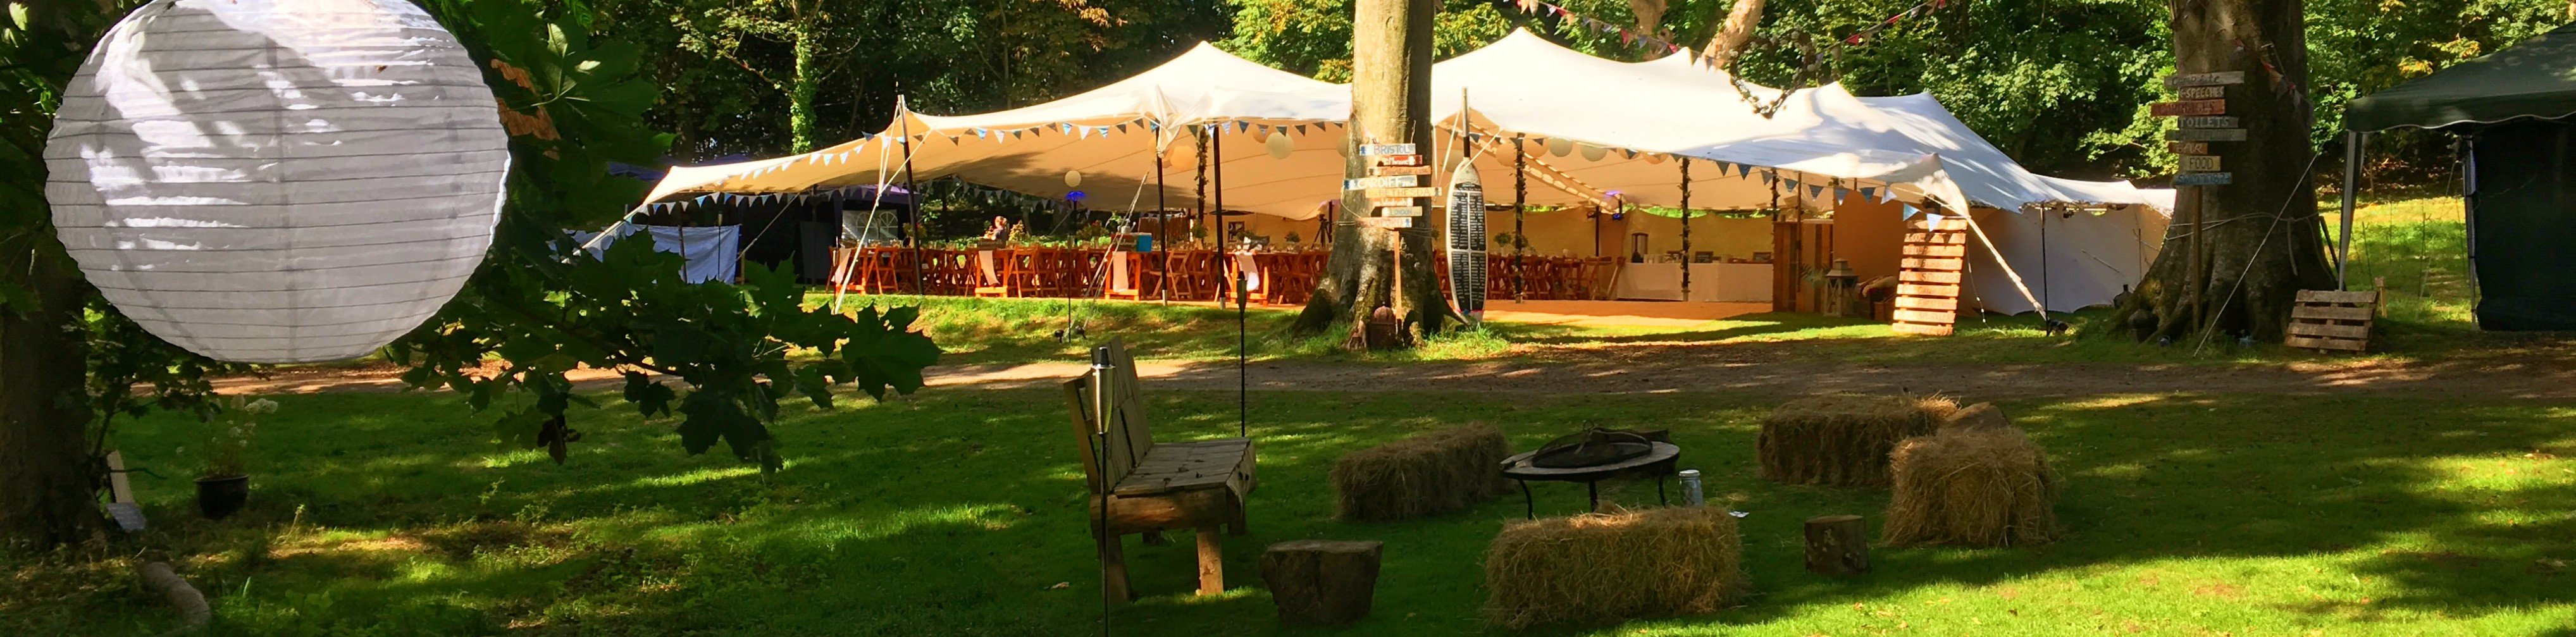 & Stretch tent hire Hampshire - Let us stretch your imagination